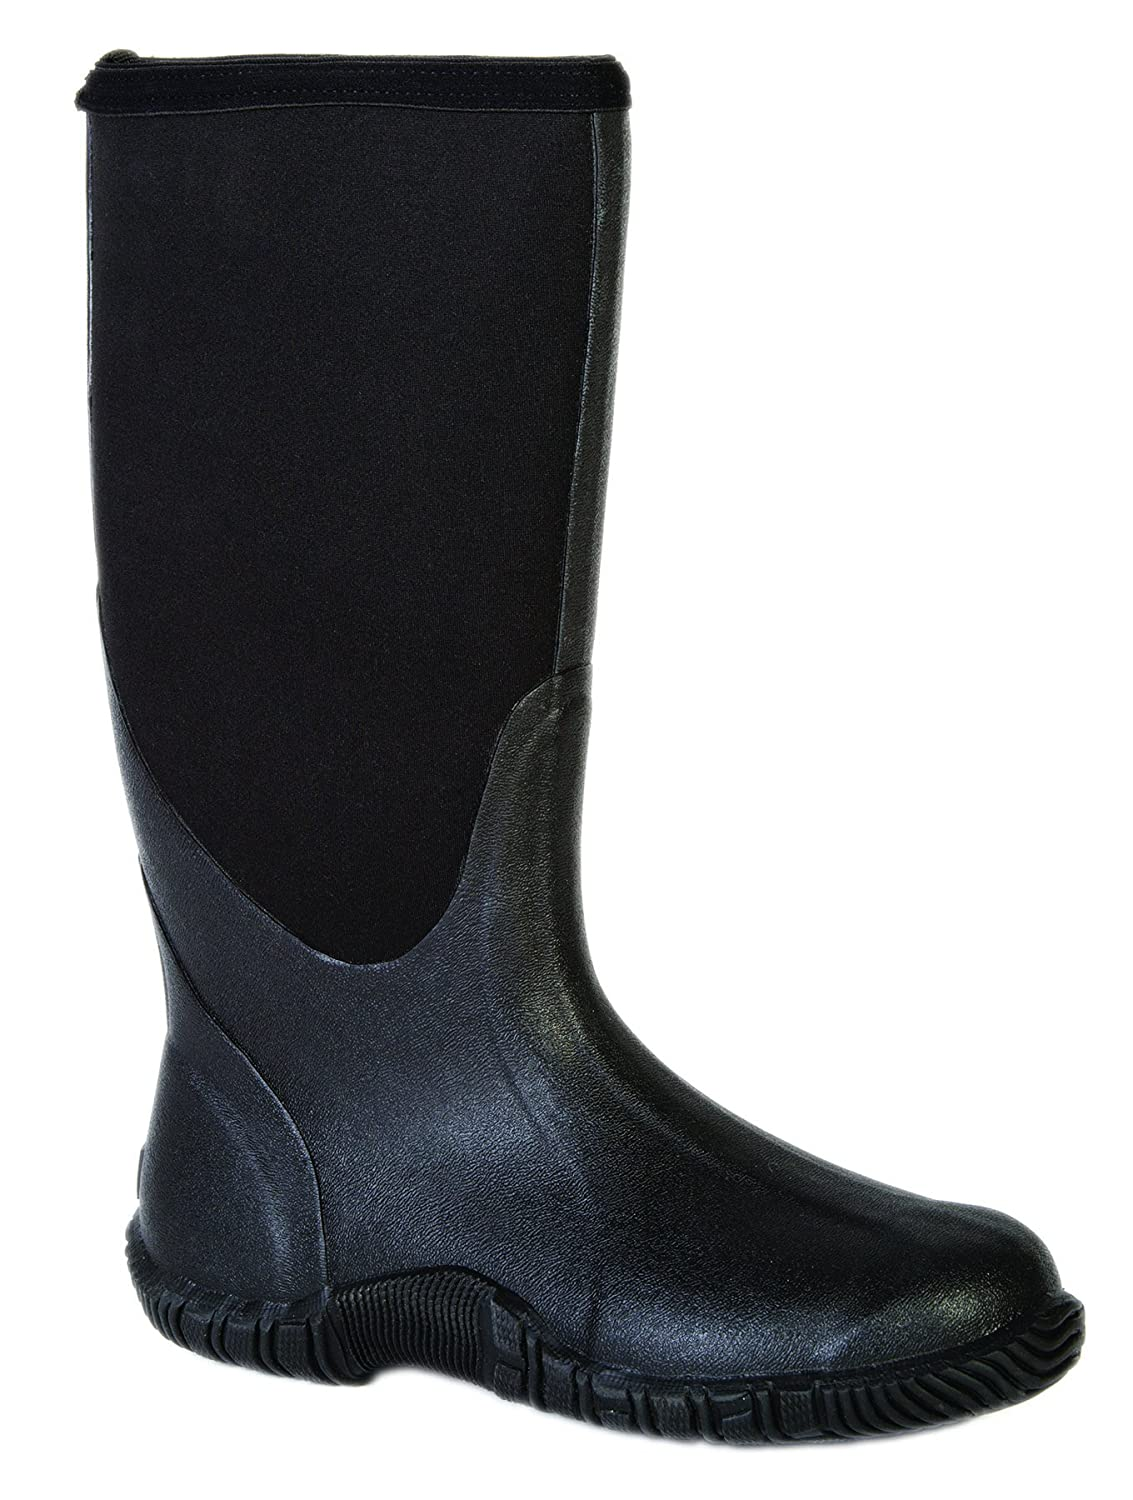 Ranger Outdoor Comfort Series Cal 15 Mens Waterproof Boots 67507 Honeywell Safety Products USA 67507-BLK-110 Black